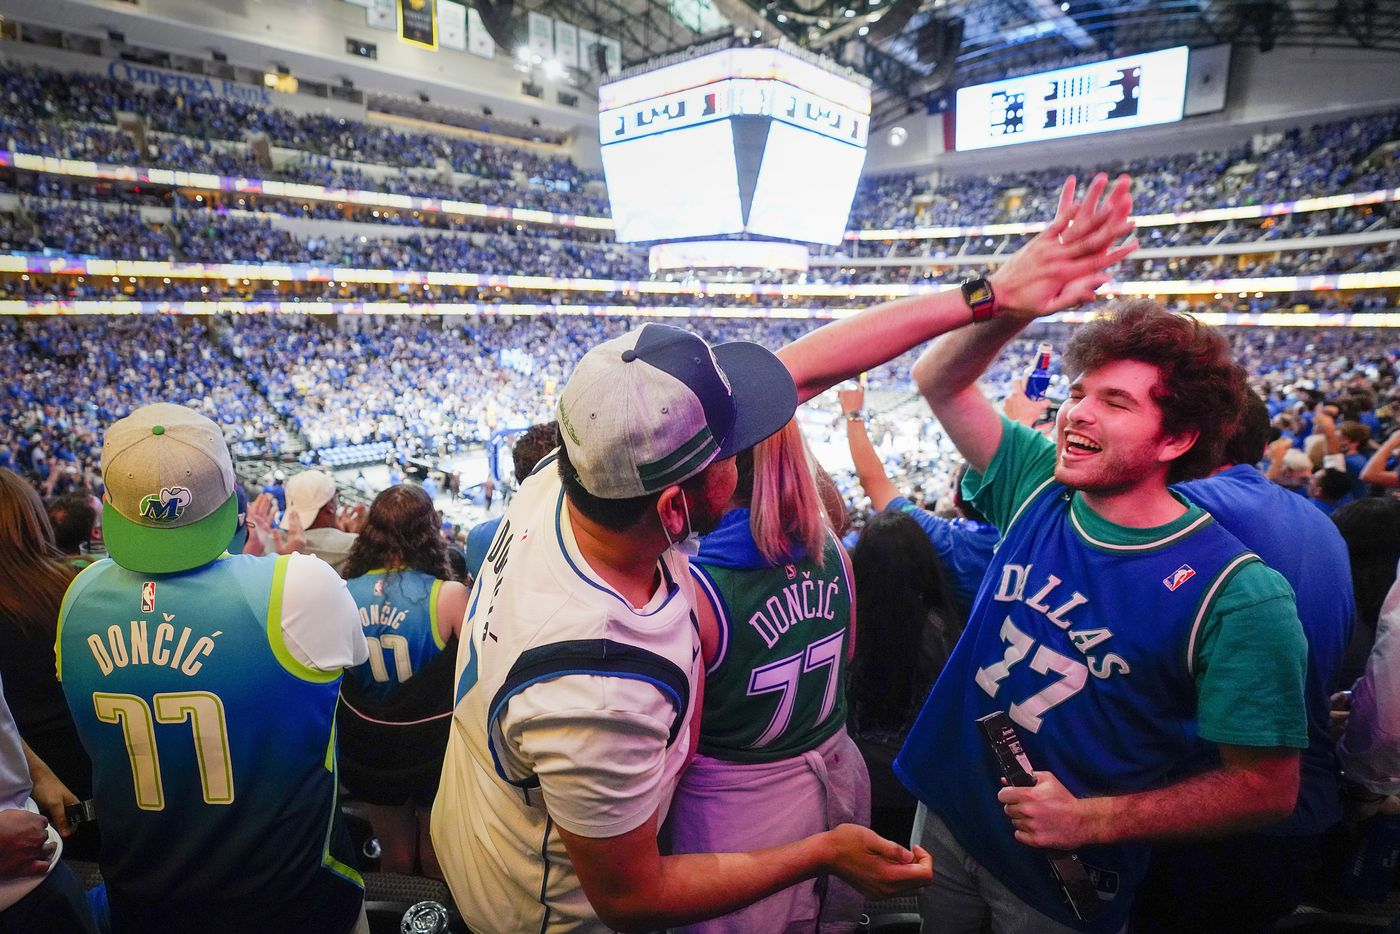 Dallas Mavericks fans Sean Bush (right) and Jay Ramos, all wearing guard Luka Doncic #77 jerseys, cheer a basket during the first quarter of an NBA playoff basketball game against the LA Clippers at American Airlines Center on Friday, May 28, 2021, in Dallas.